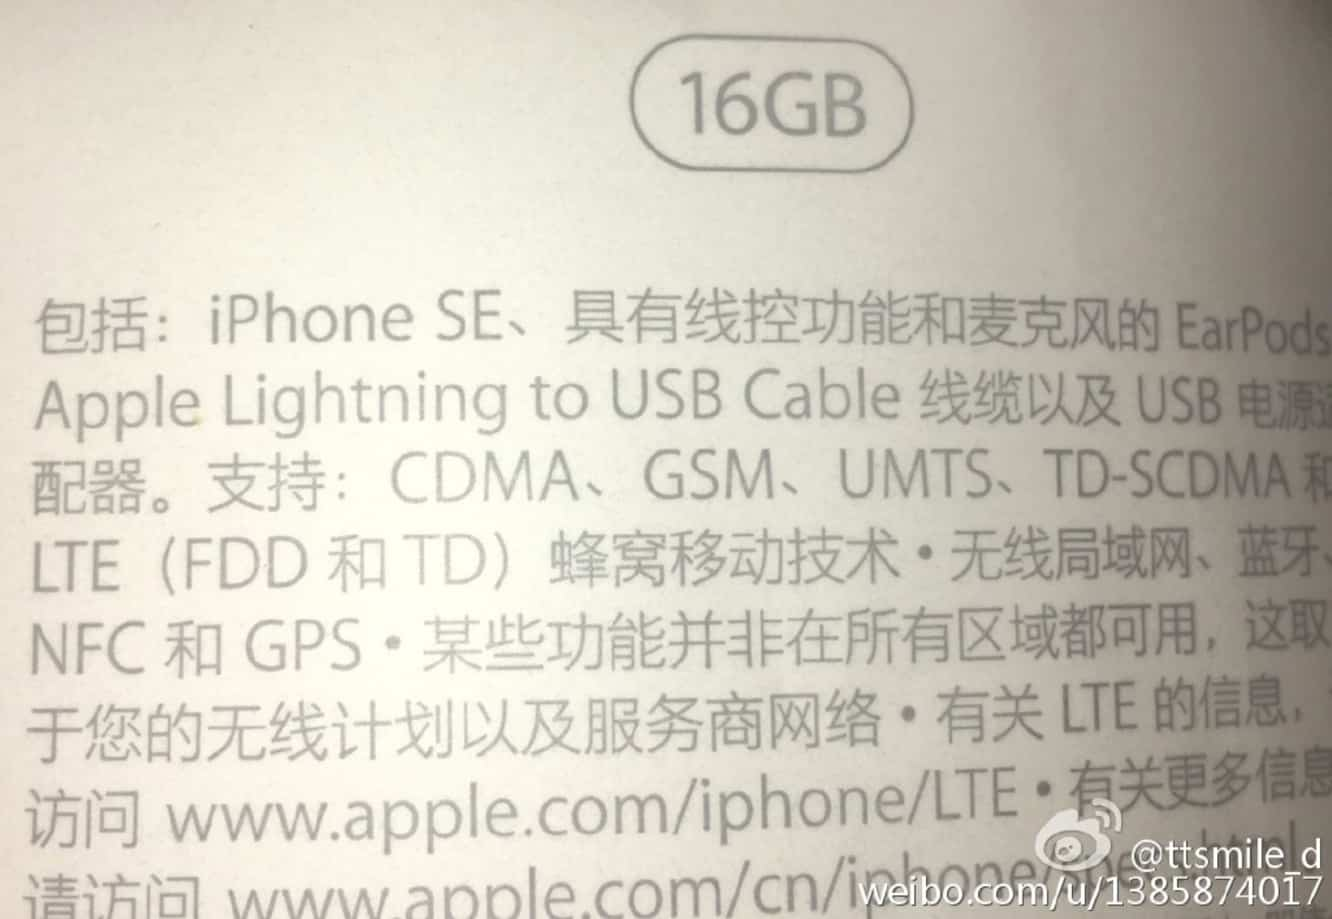 Leaked 'iPhone SE' packaging appears to confirm name, 16GB model